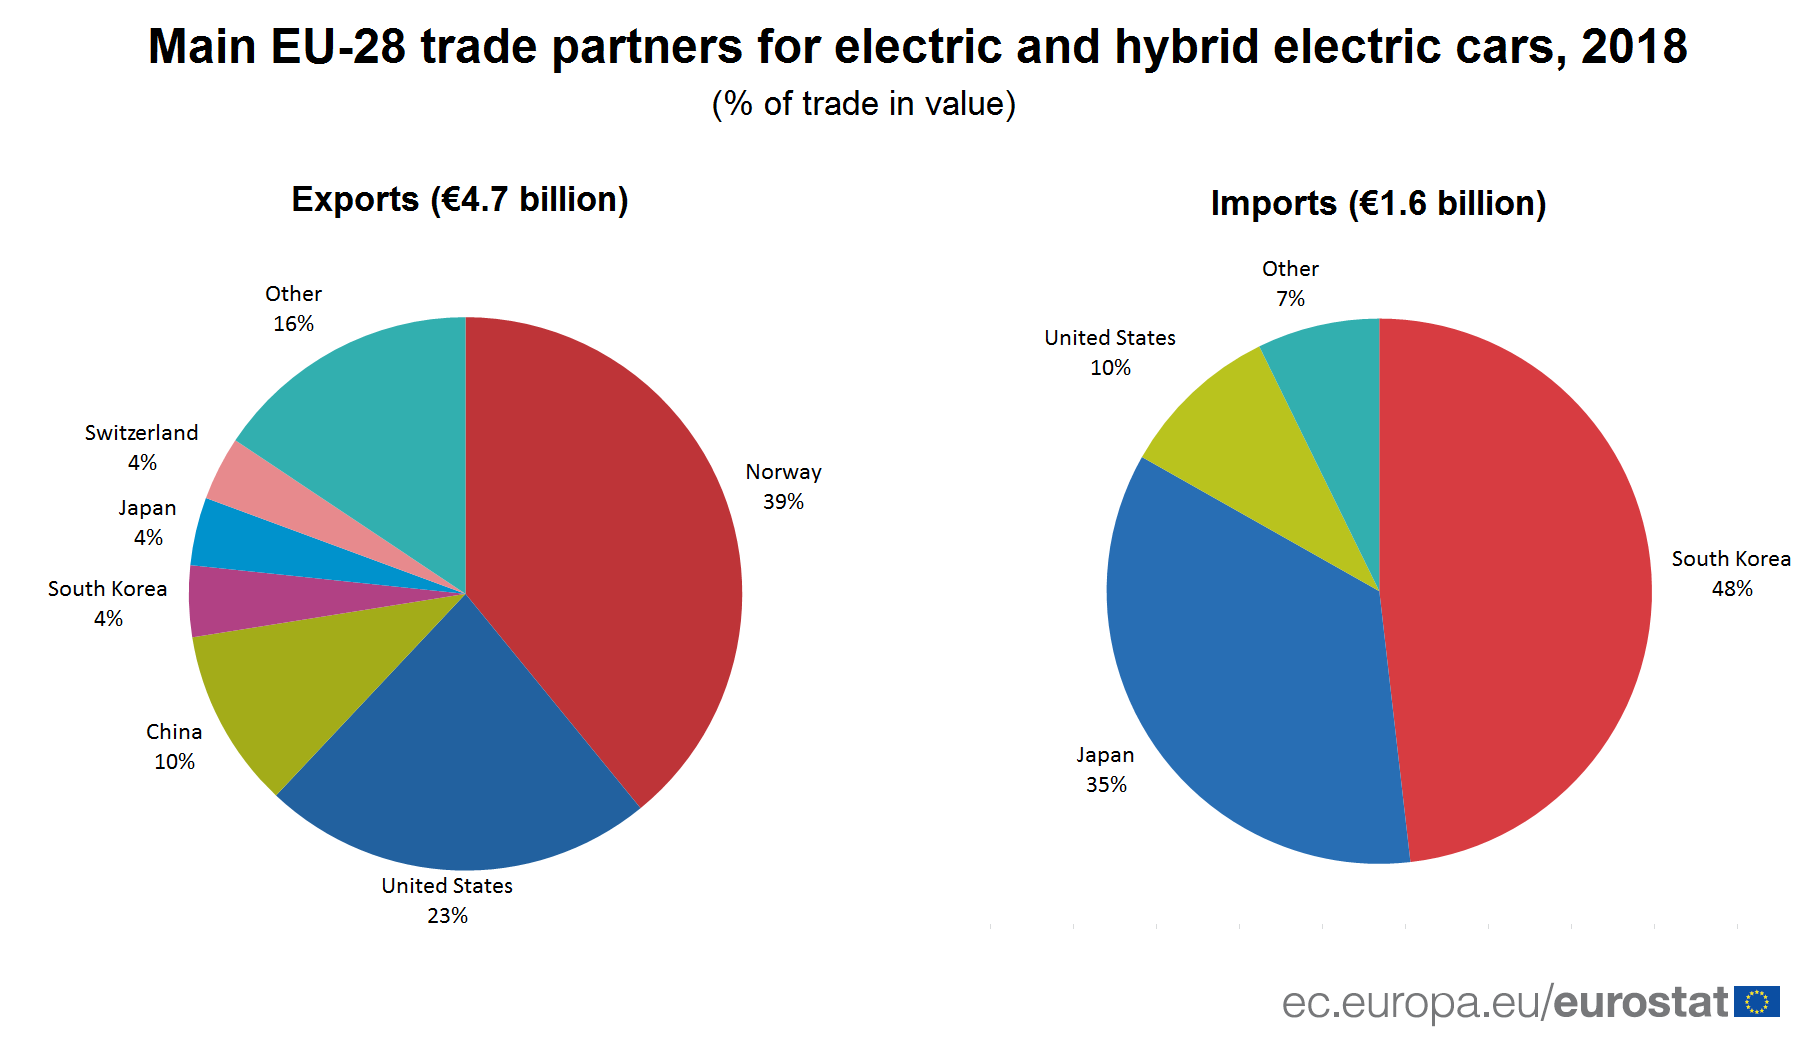 Pie charts showing main trade partners for electric cars in terms of EU exports and EU imports in 2018